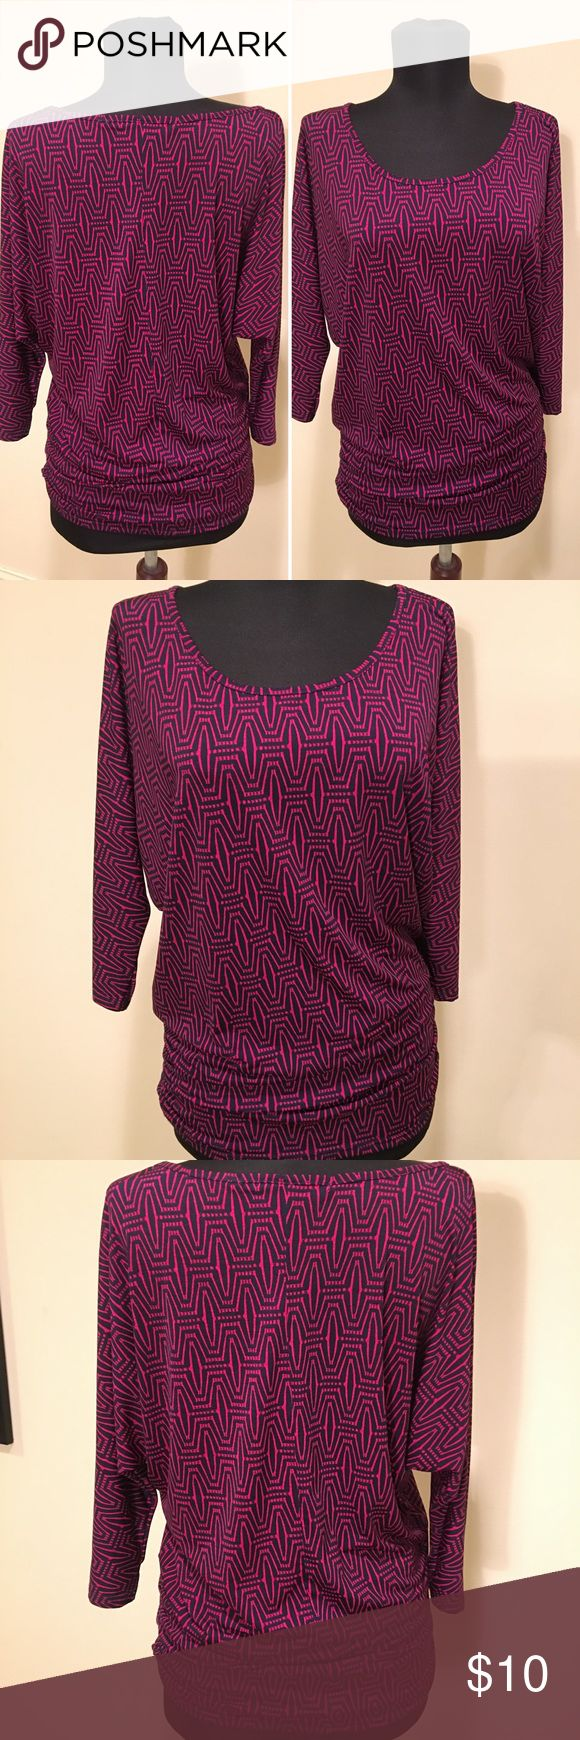 Fuschia and Navy Scoop Neck Knit Top Bright, geometric pattern on this easy to wear top. Looks great under a jacket or all by itself. Worn twice. THE BEST PART: Some proceeds will go toward providing professional clothing to homeless individuals who are seeking or maintaining employment. Tops Blouses